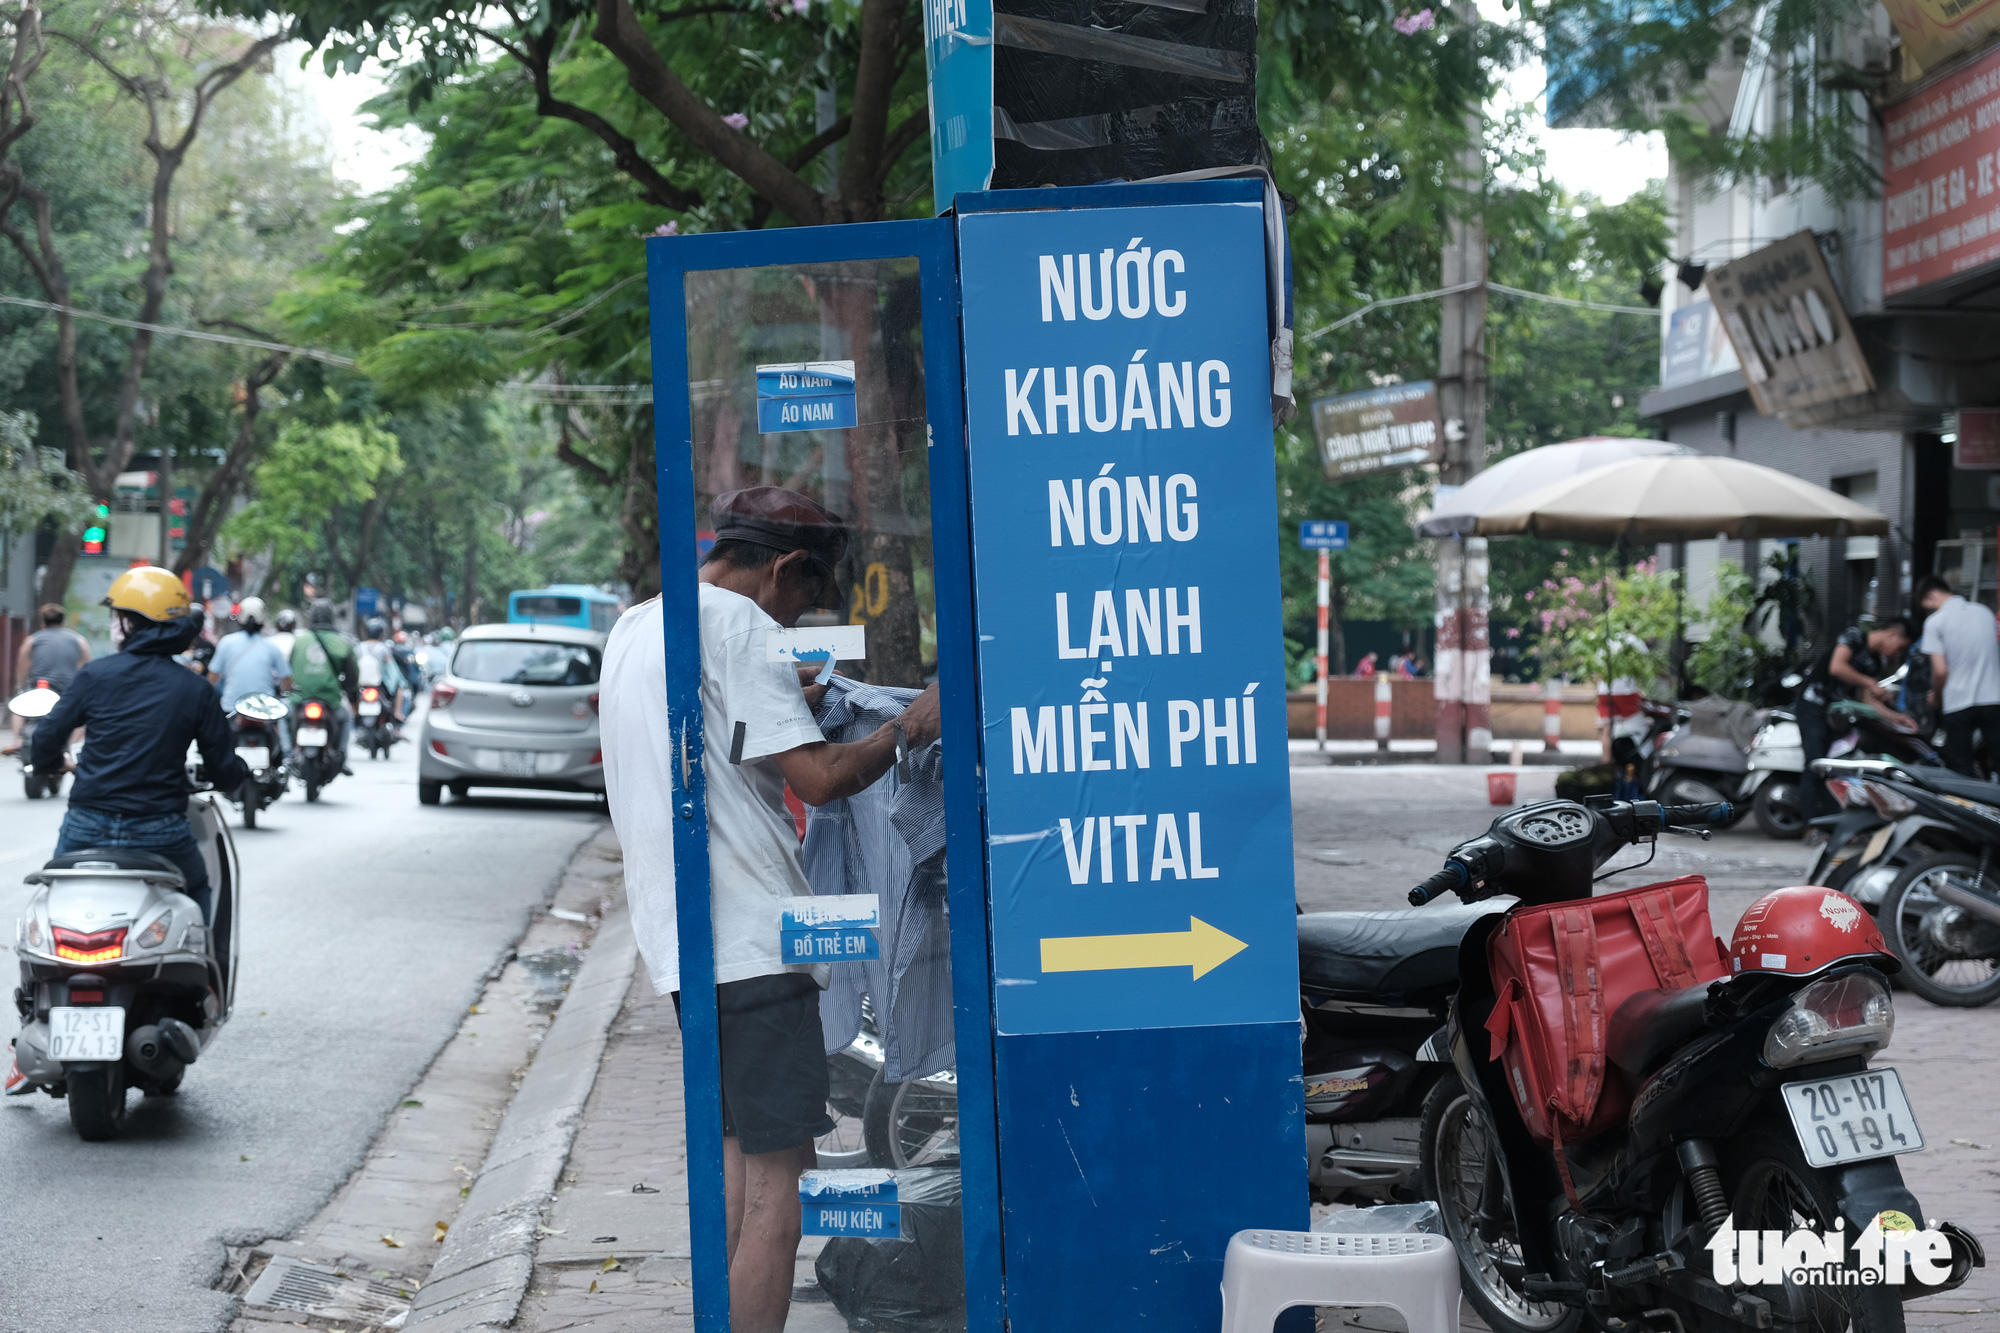 A man picks clothes from a free clothes cabinet outside a store in Hanoi, Vietnam. Photo: Song La / Tuoi Tre